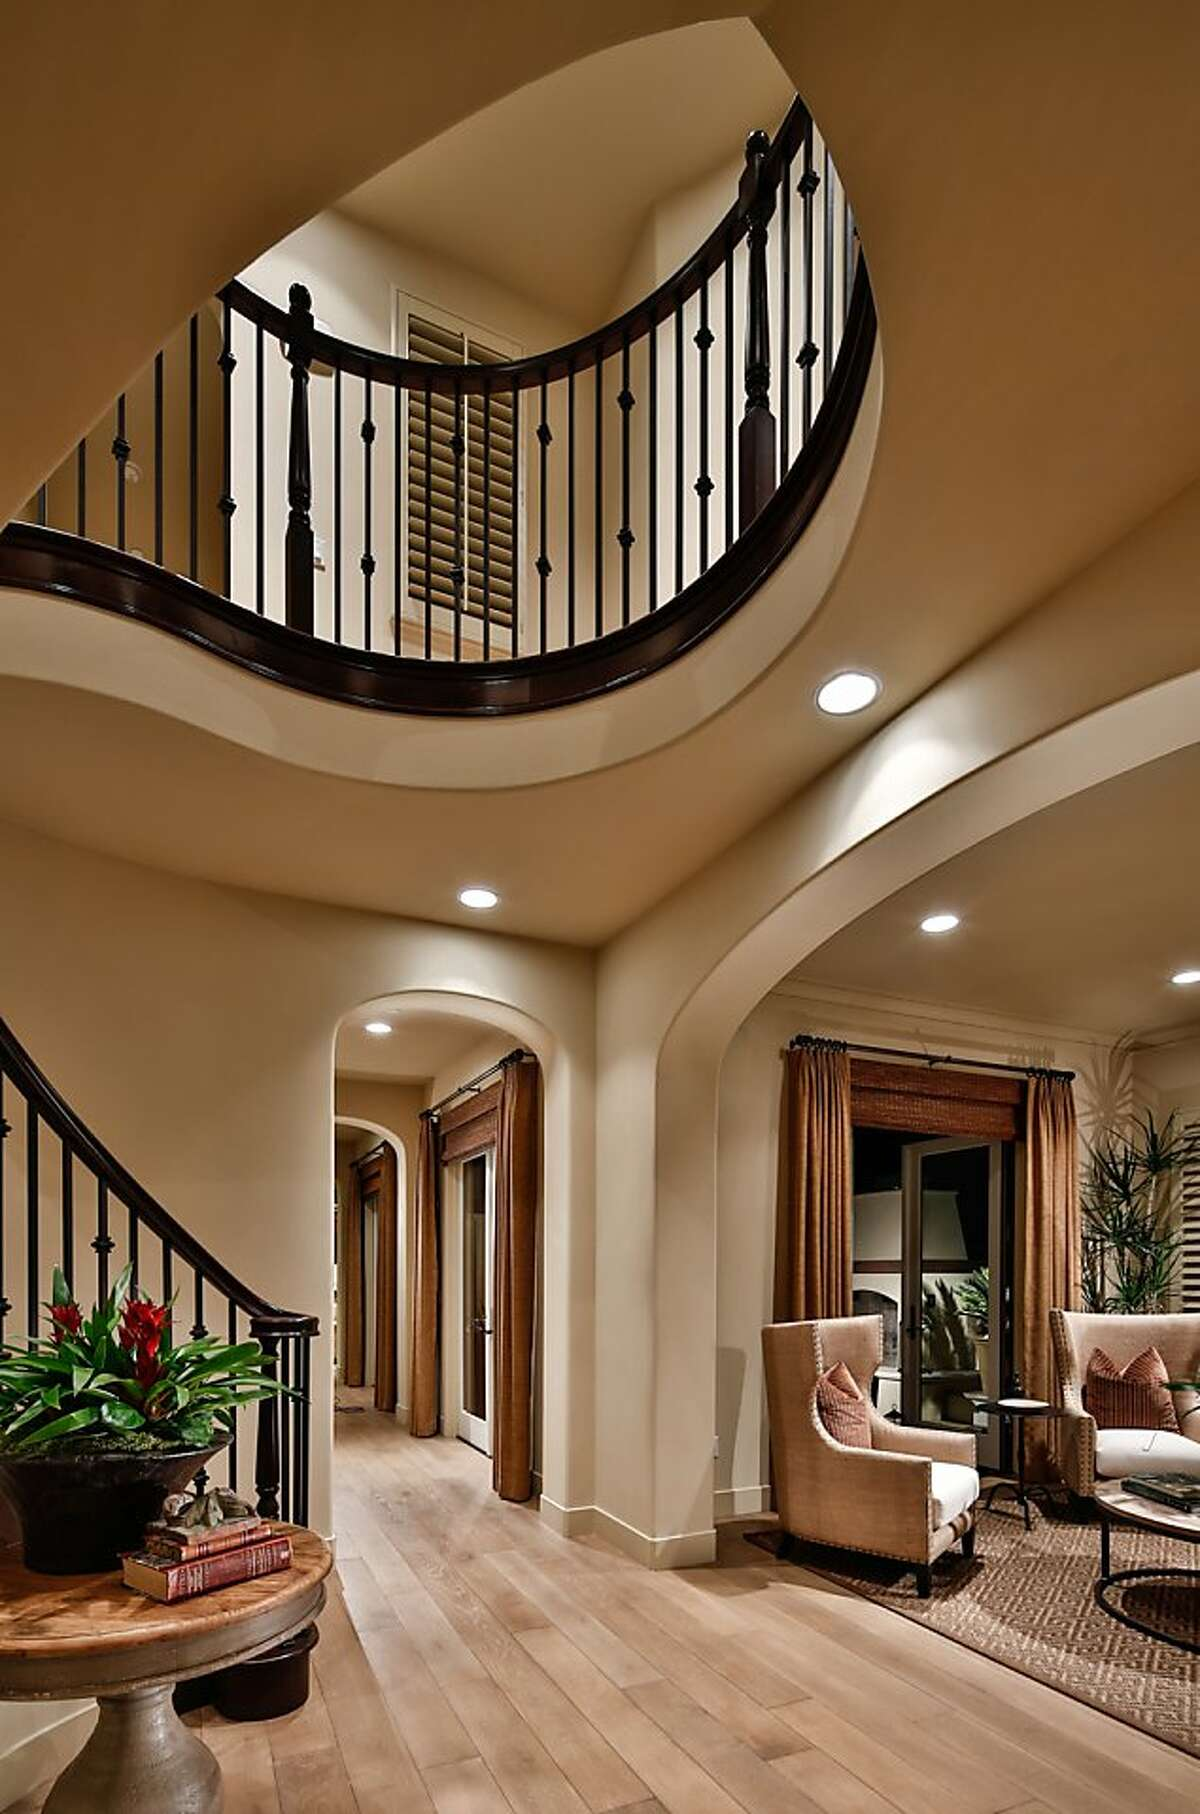 The grand staircase includes a curved bannister.